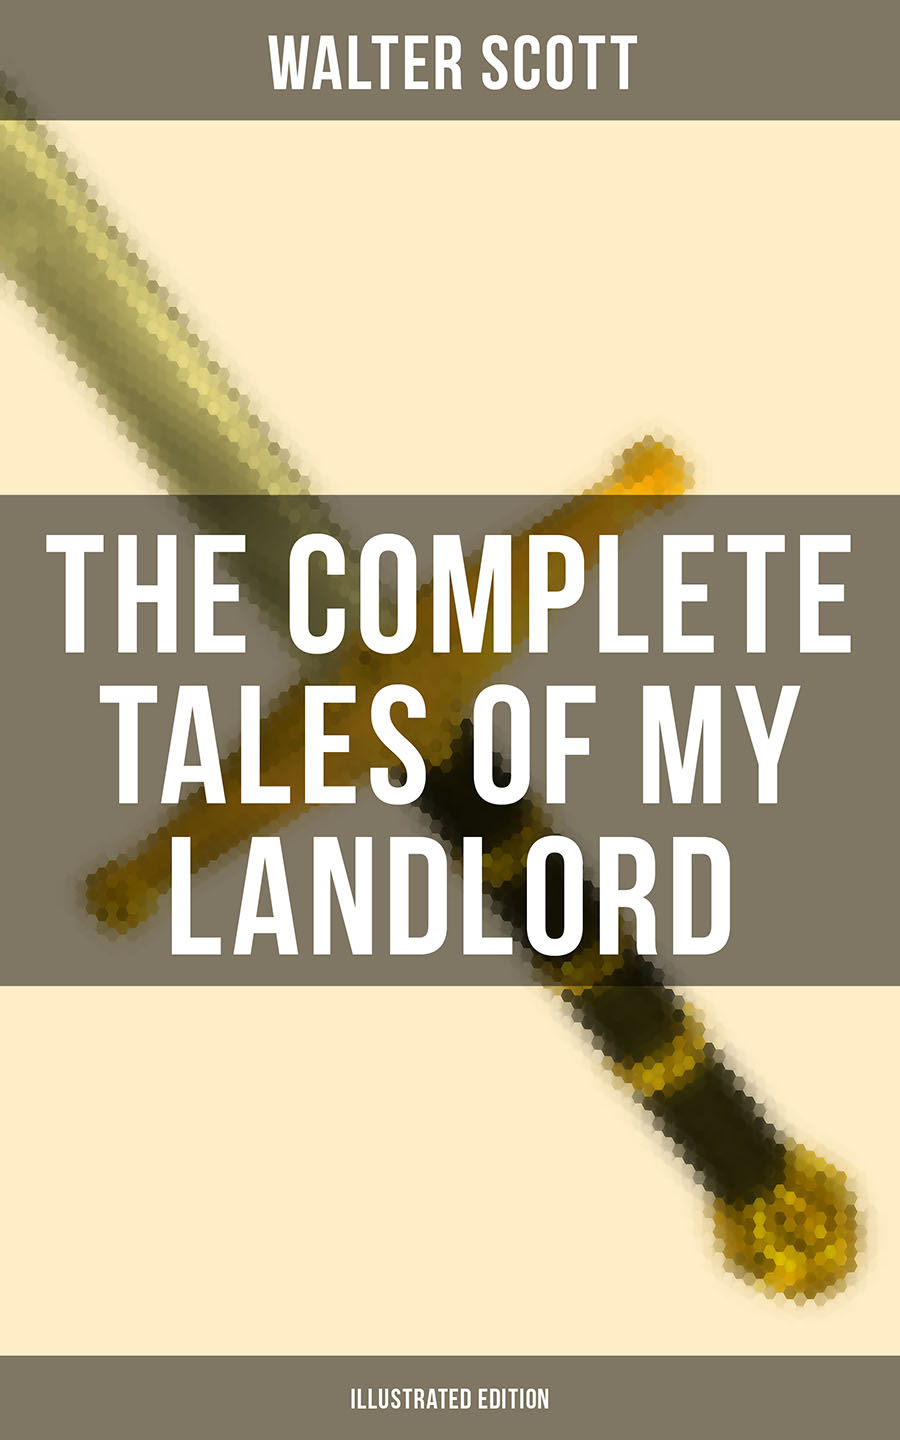 Walter Scott THE COMPLETE TALES OF MY LANDLORD (Illustrated Edition) walter scott tales of my landlord the stories from the scottish highlands illustrated edition